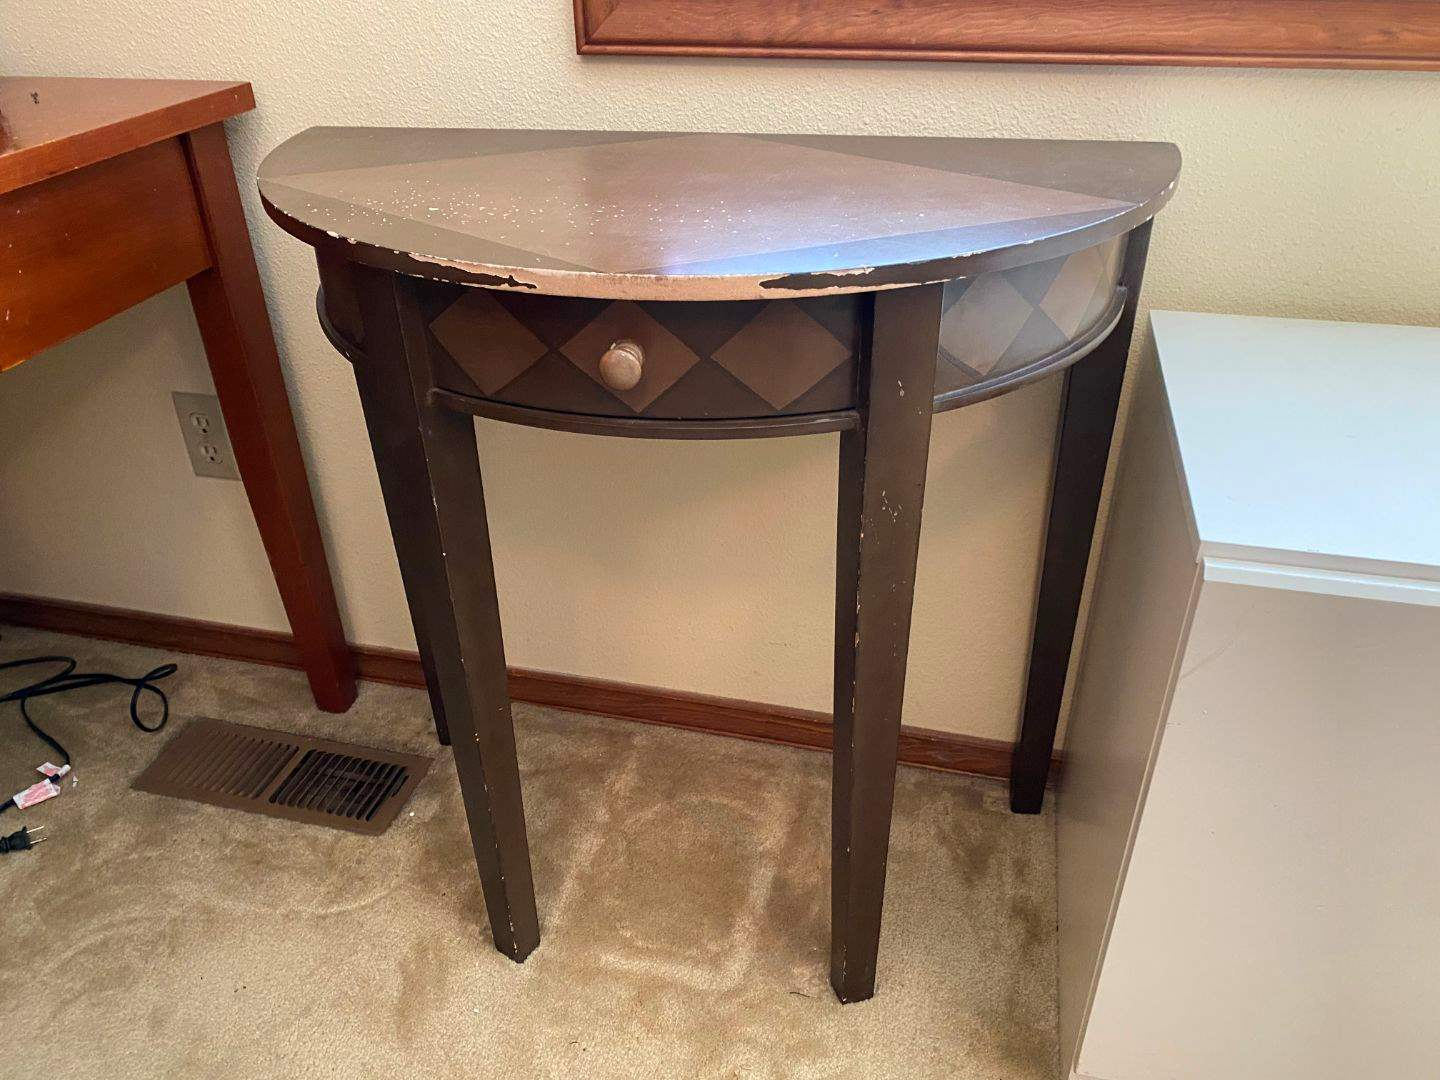 Lot # 151 - Wood Wall Hugging Side Table from Pier 1 Imports (main image)